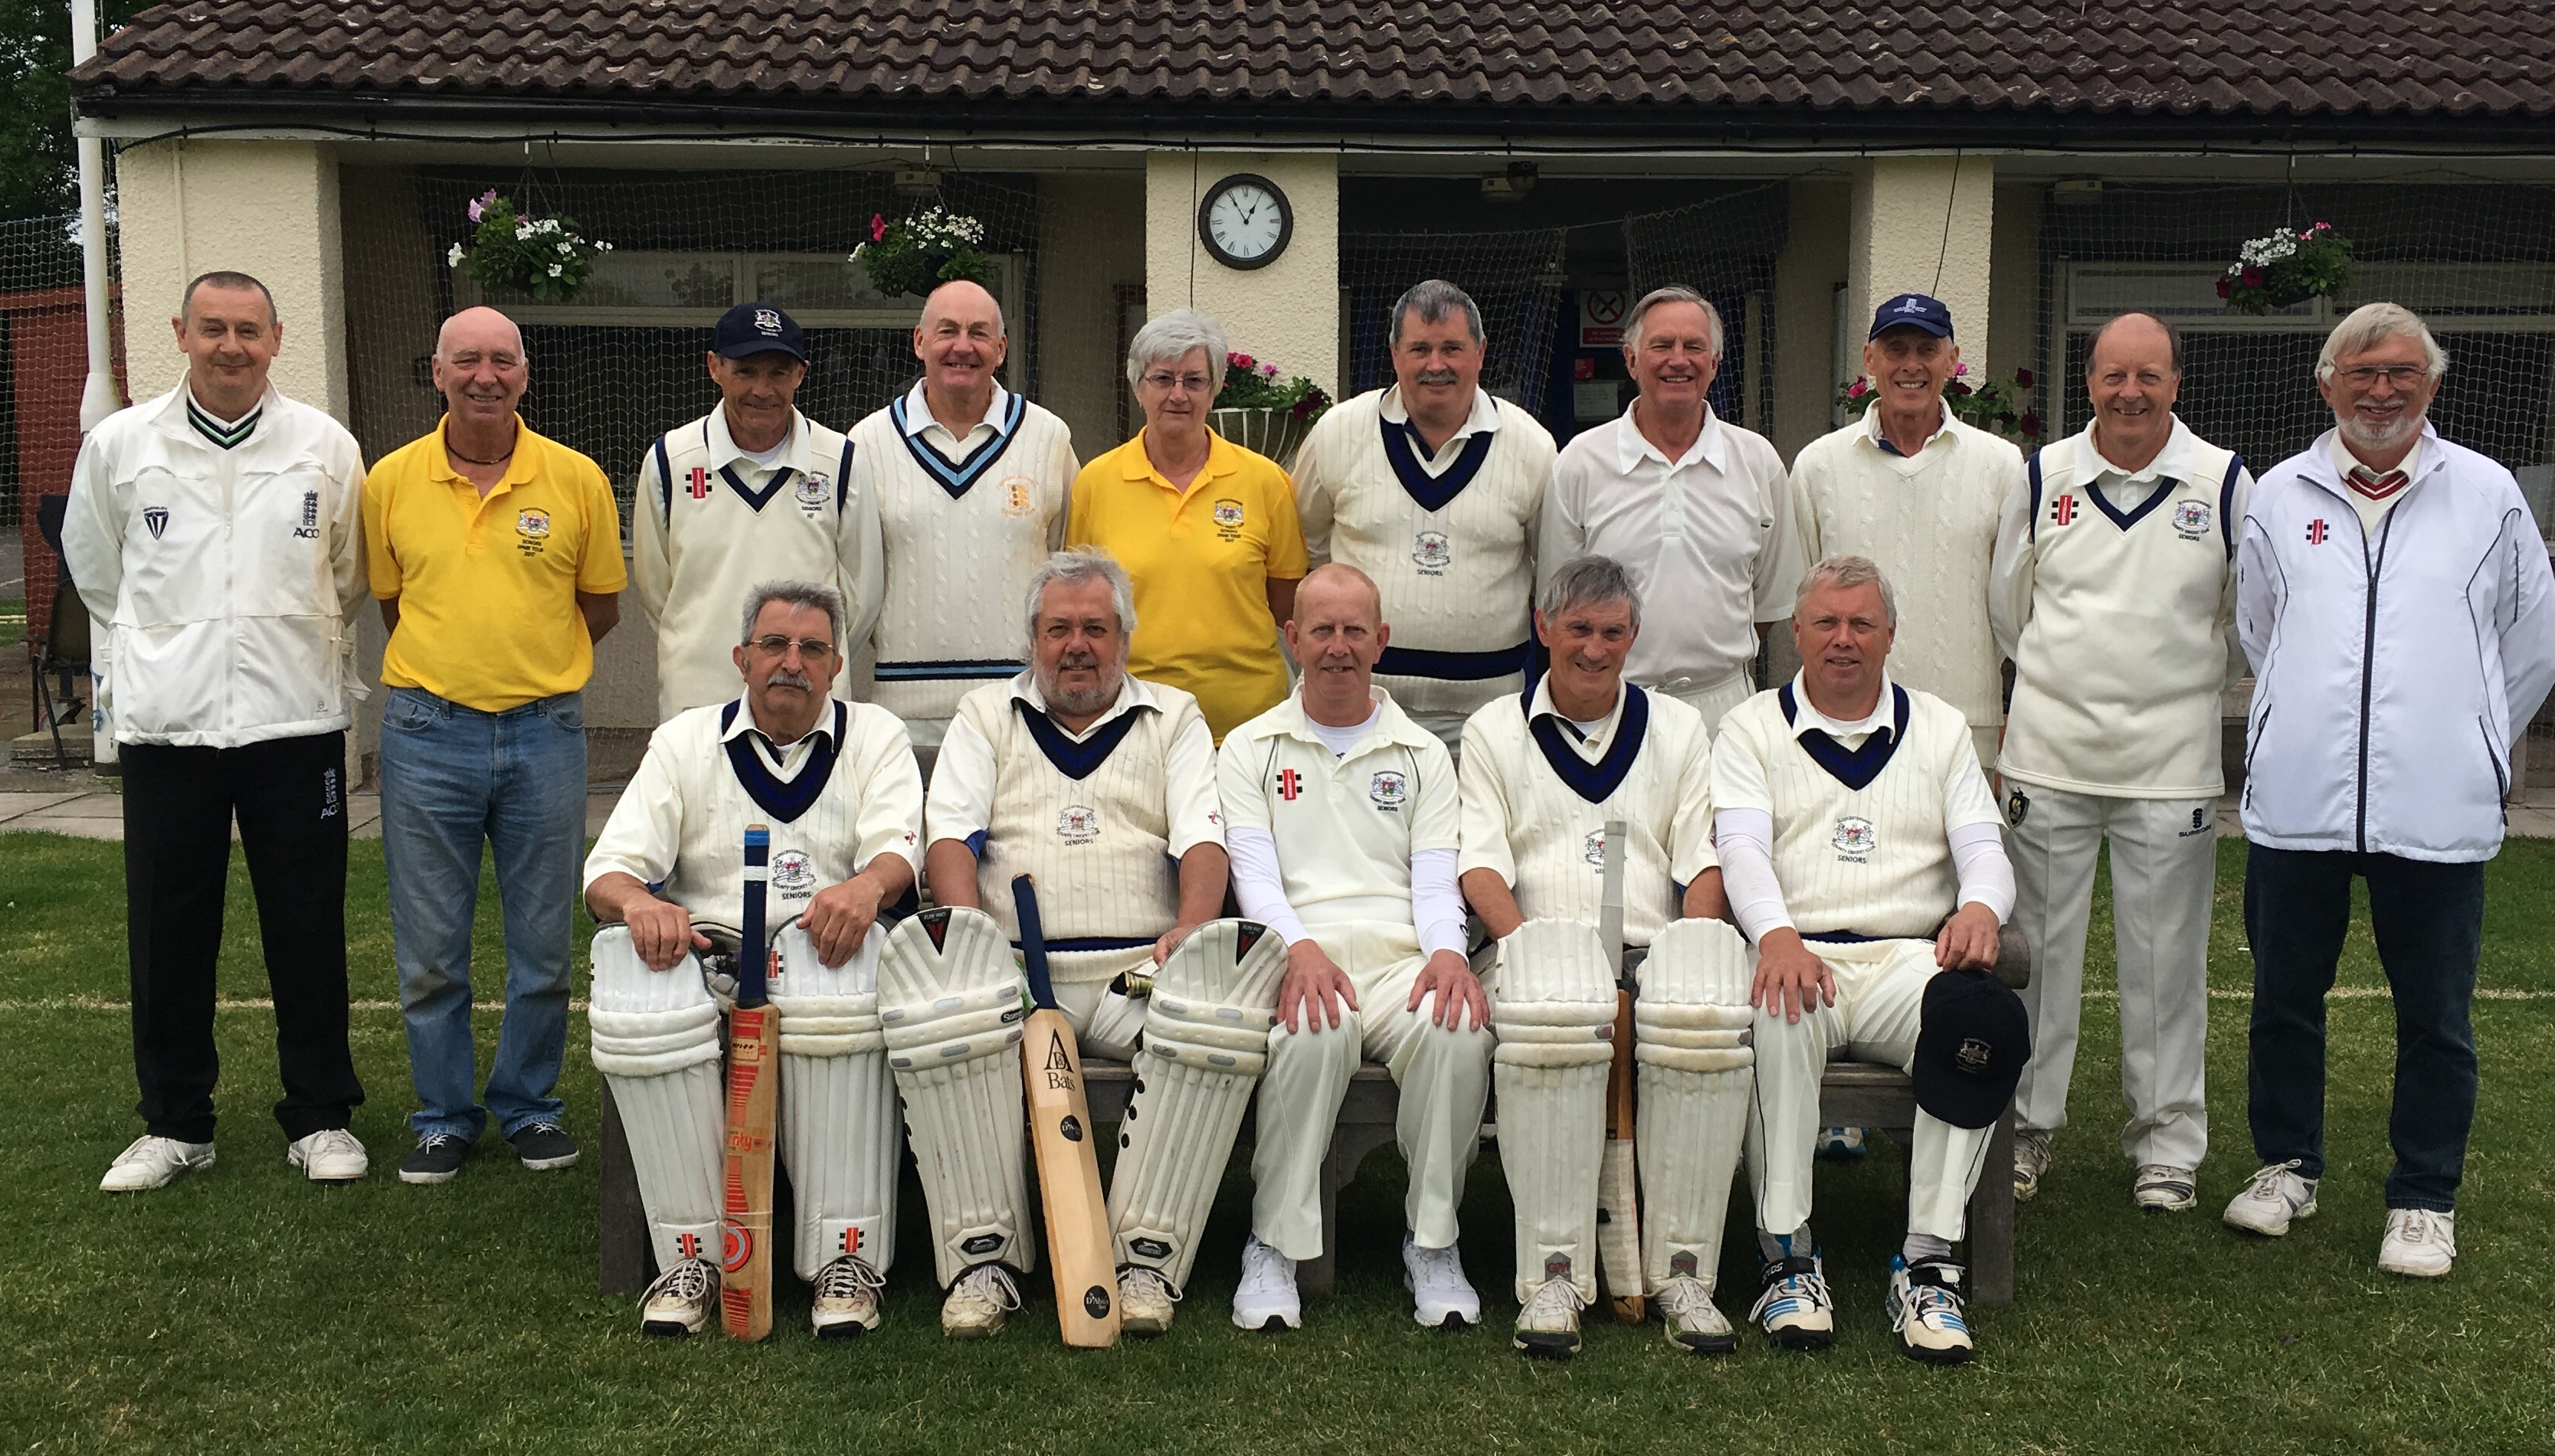 Setback for Gloucestershire Over 60s 2nds against local rivals